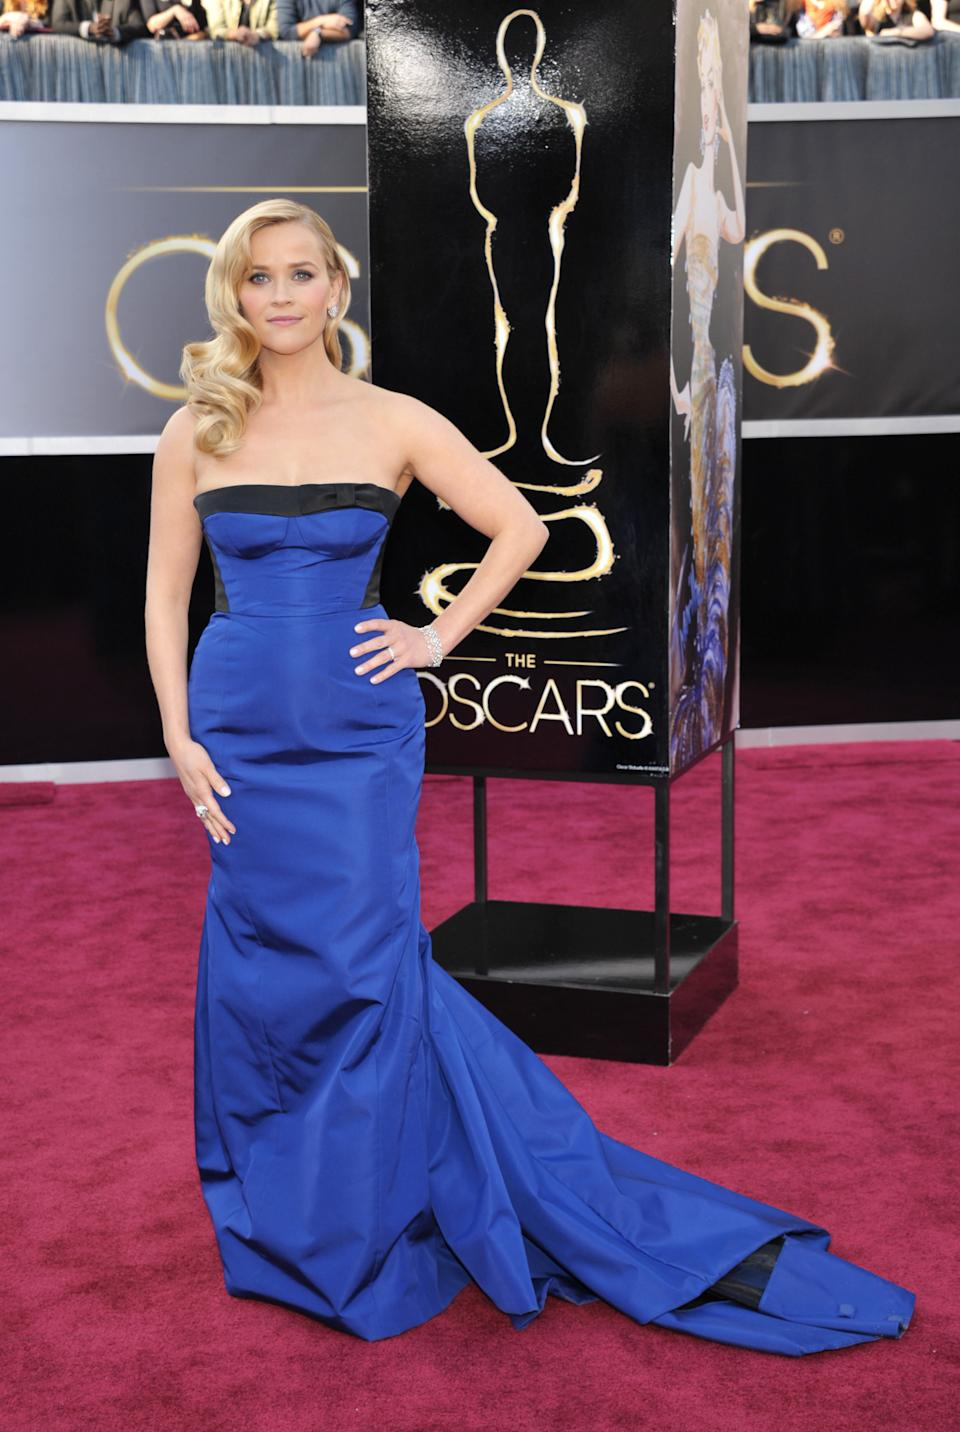 Reese Witherspoon arrives at the 85th Academy Awards at the Dolby Theatre on Sunday Feb. 24, 2013, in Los Angeles. (Photo by John Shearer/Invision/AP)